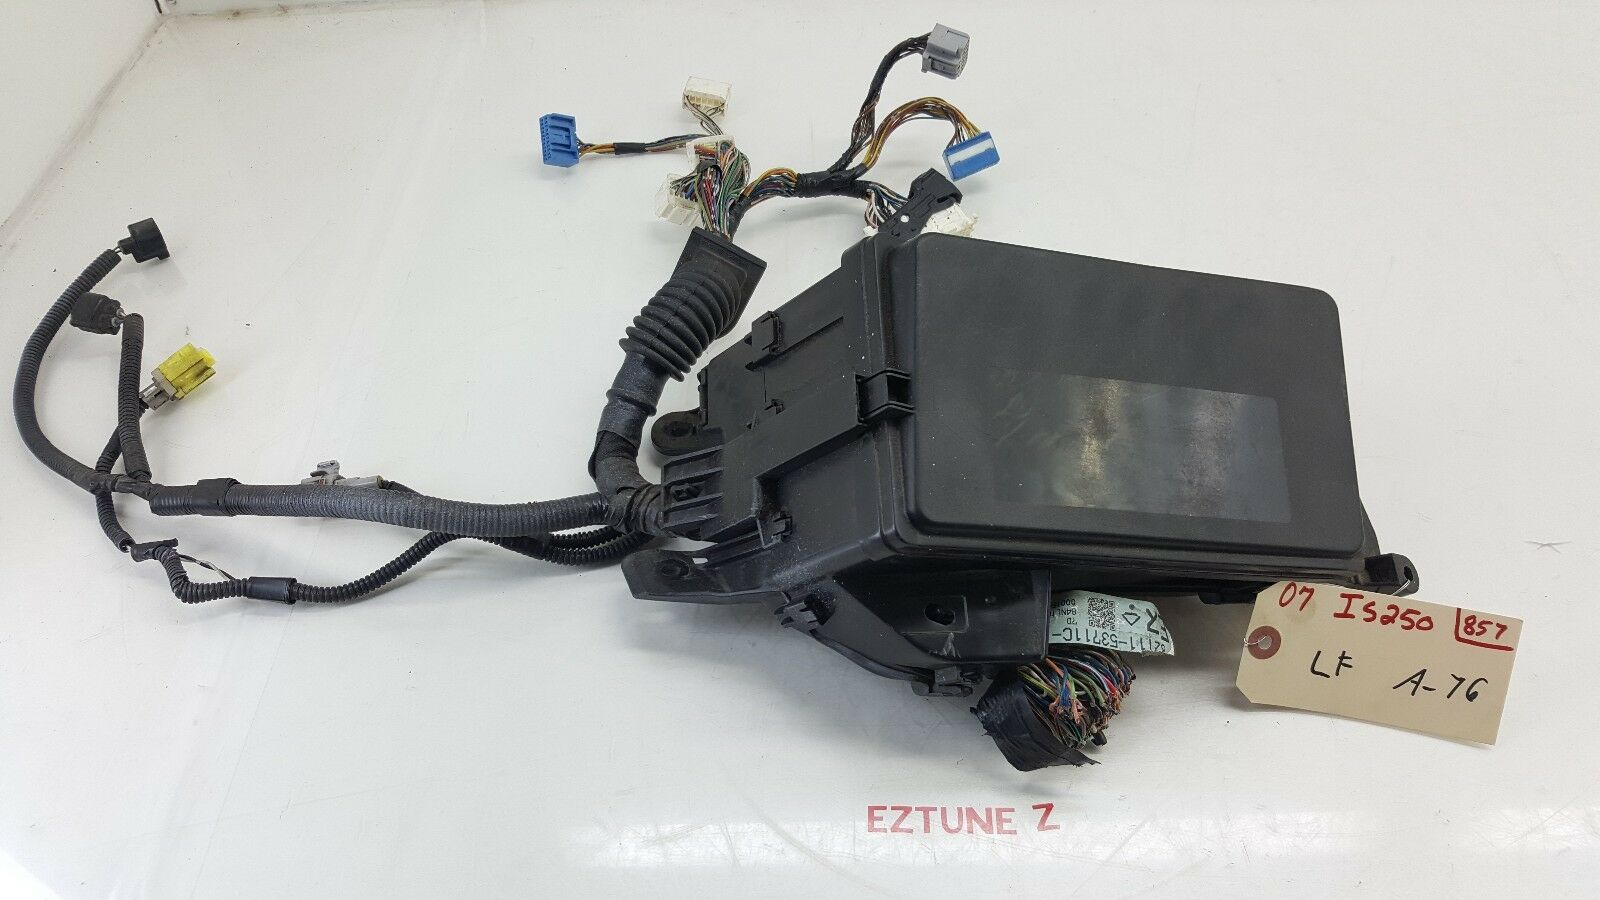 2007 Lexus Is250 Gps Floor Wire Harness Wiring Connector 82161 53820 Norton Secured Powered By Verisign